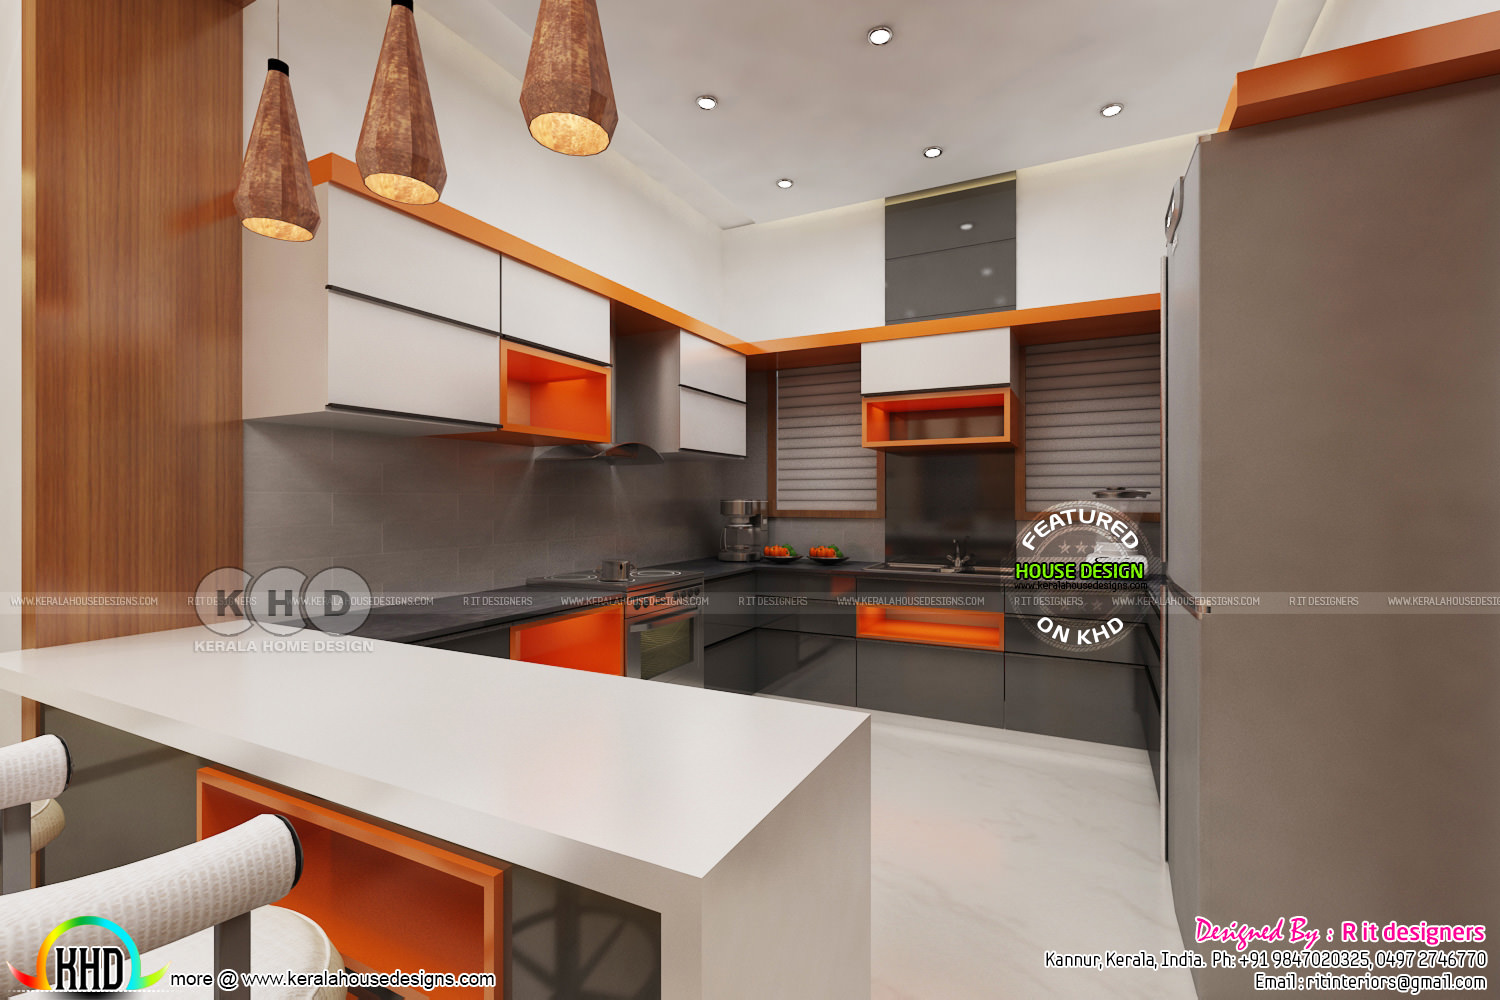 Dining With Open Kitchen And Living Room Kerala Home Design And Floor Plans 8000 Houses